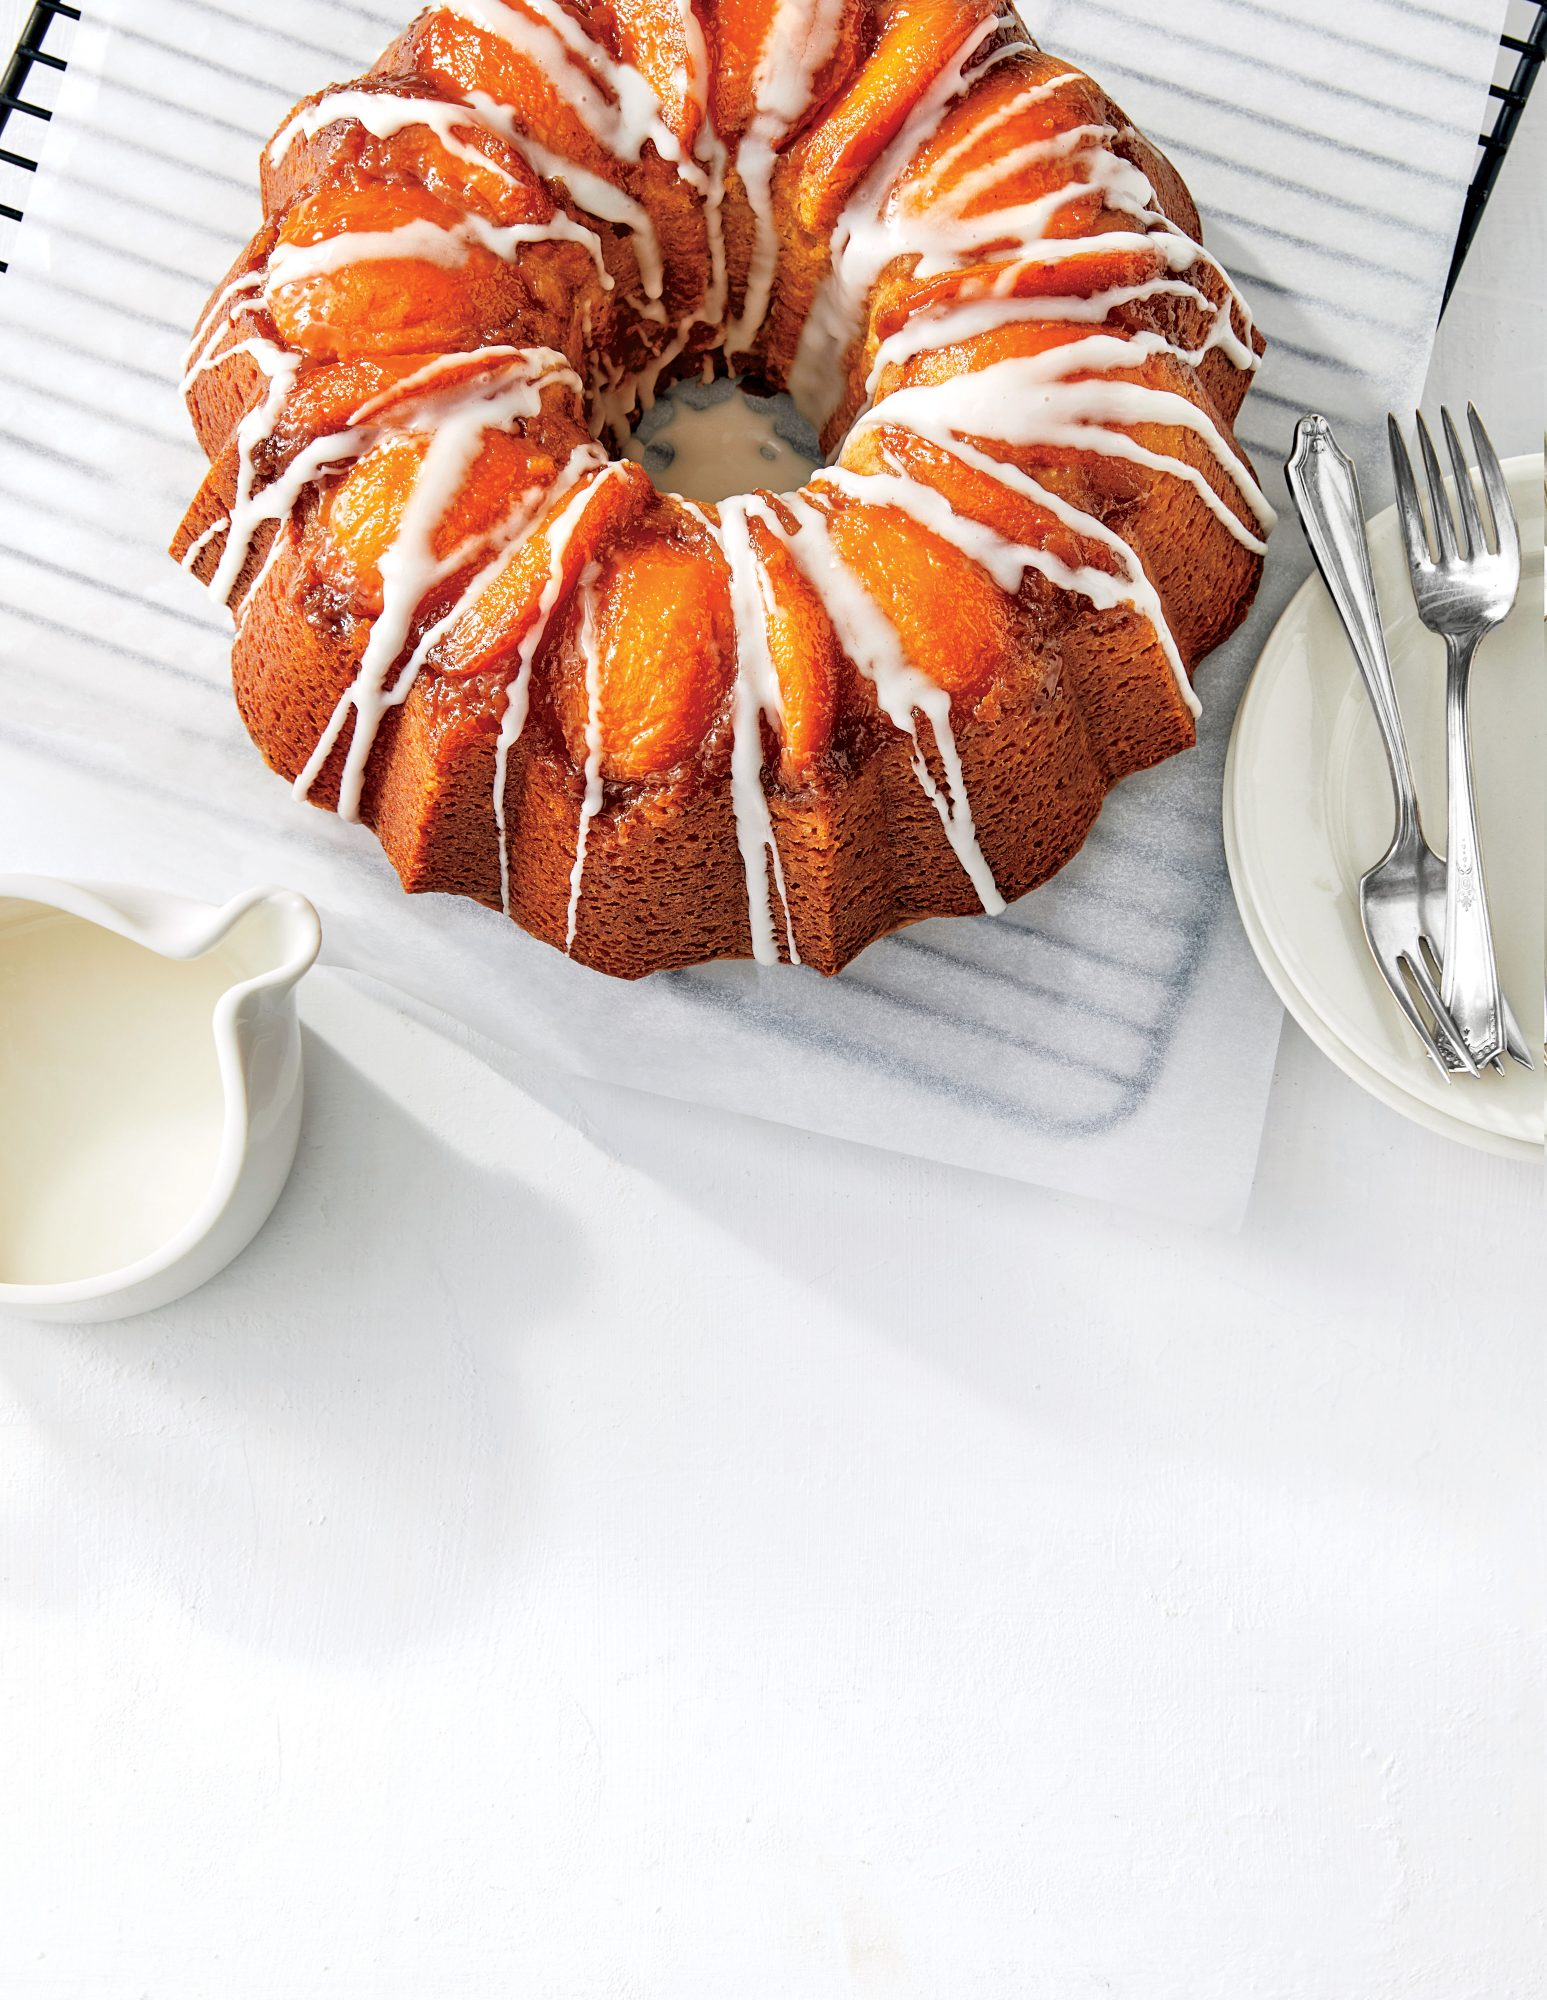 Peach-Bourbon Upside-Down Bundt Cake Recipe Pam Lolley